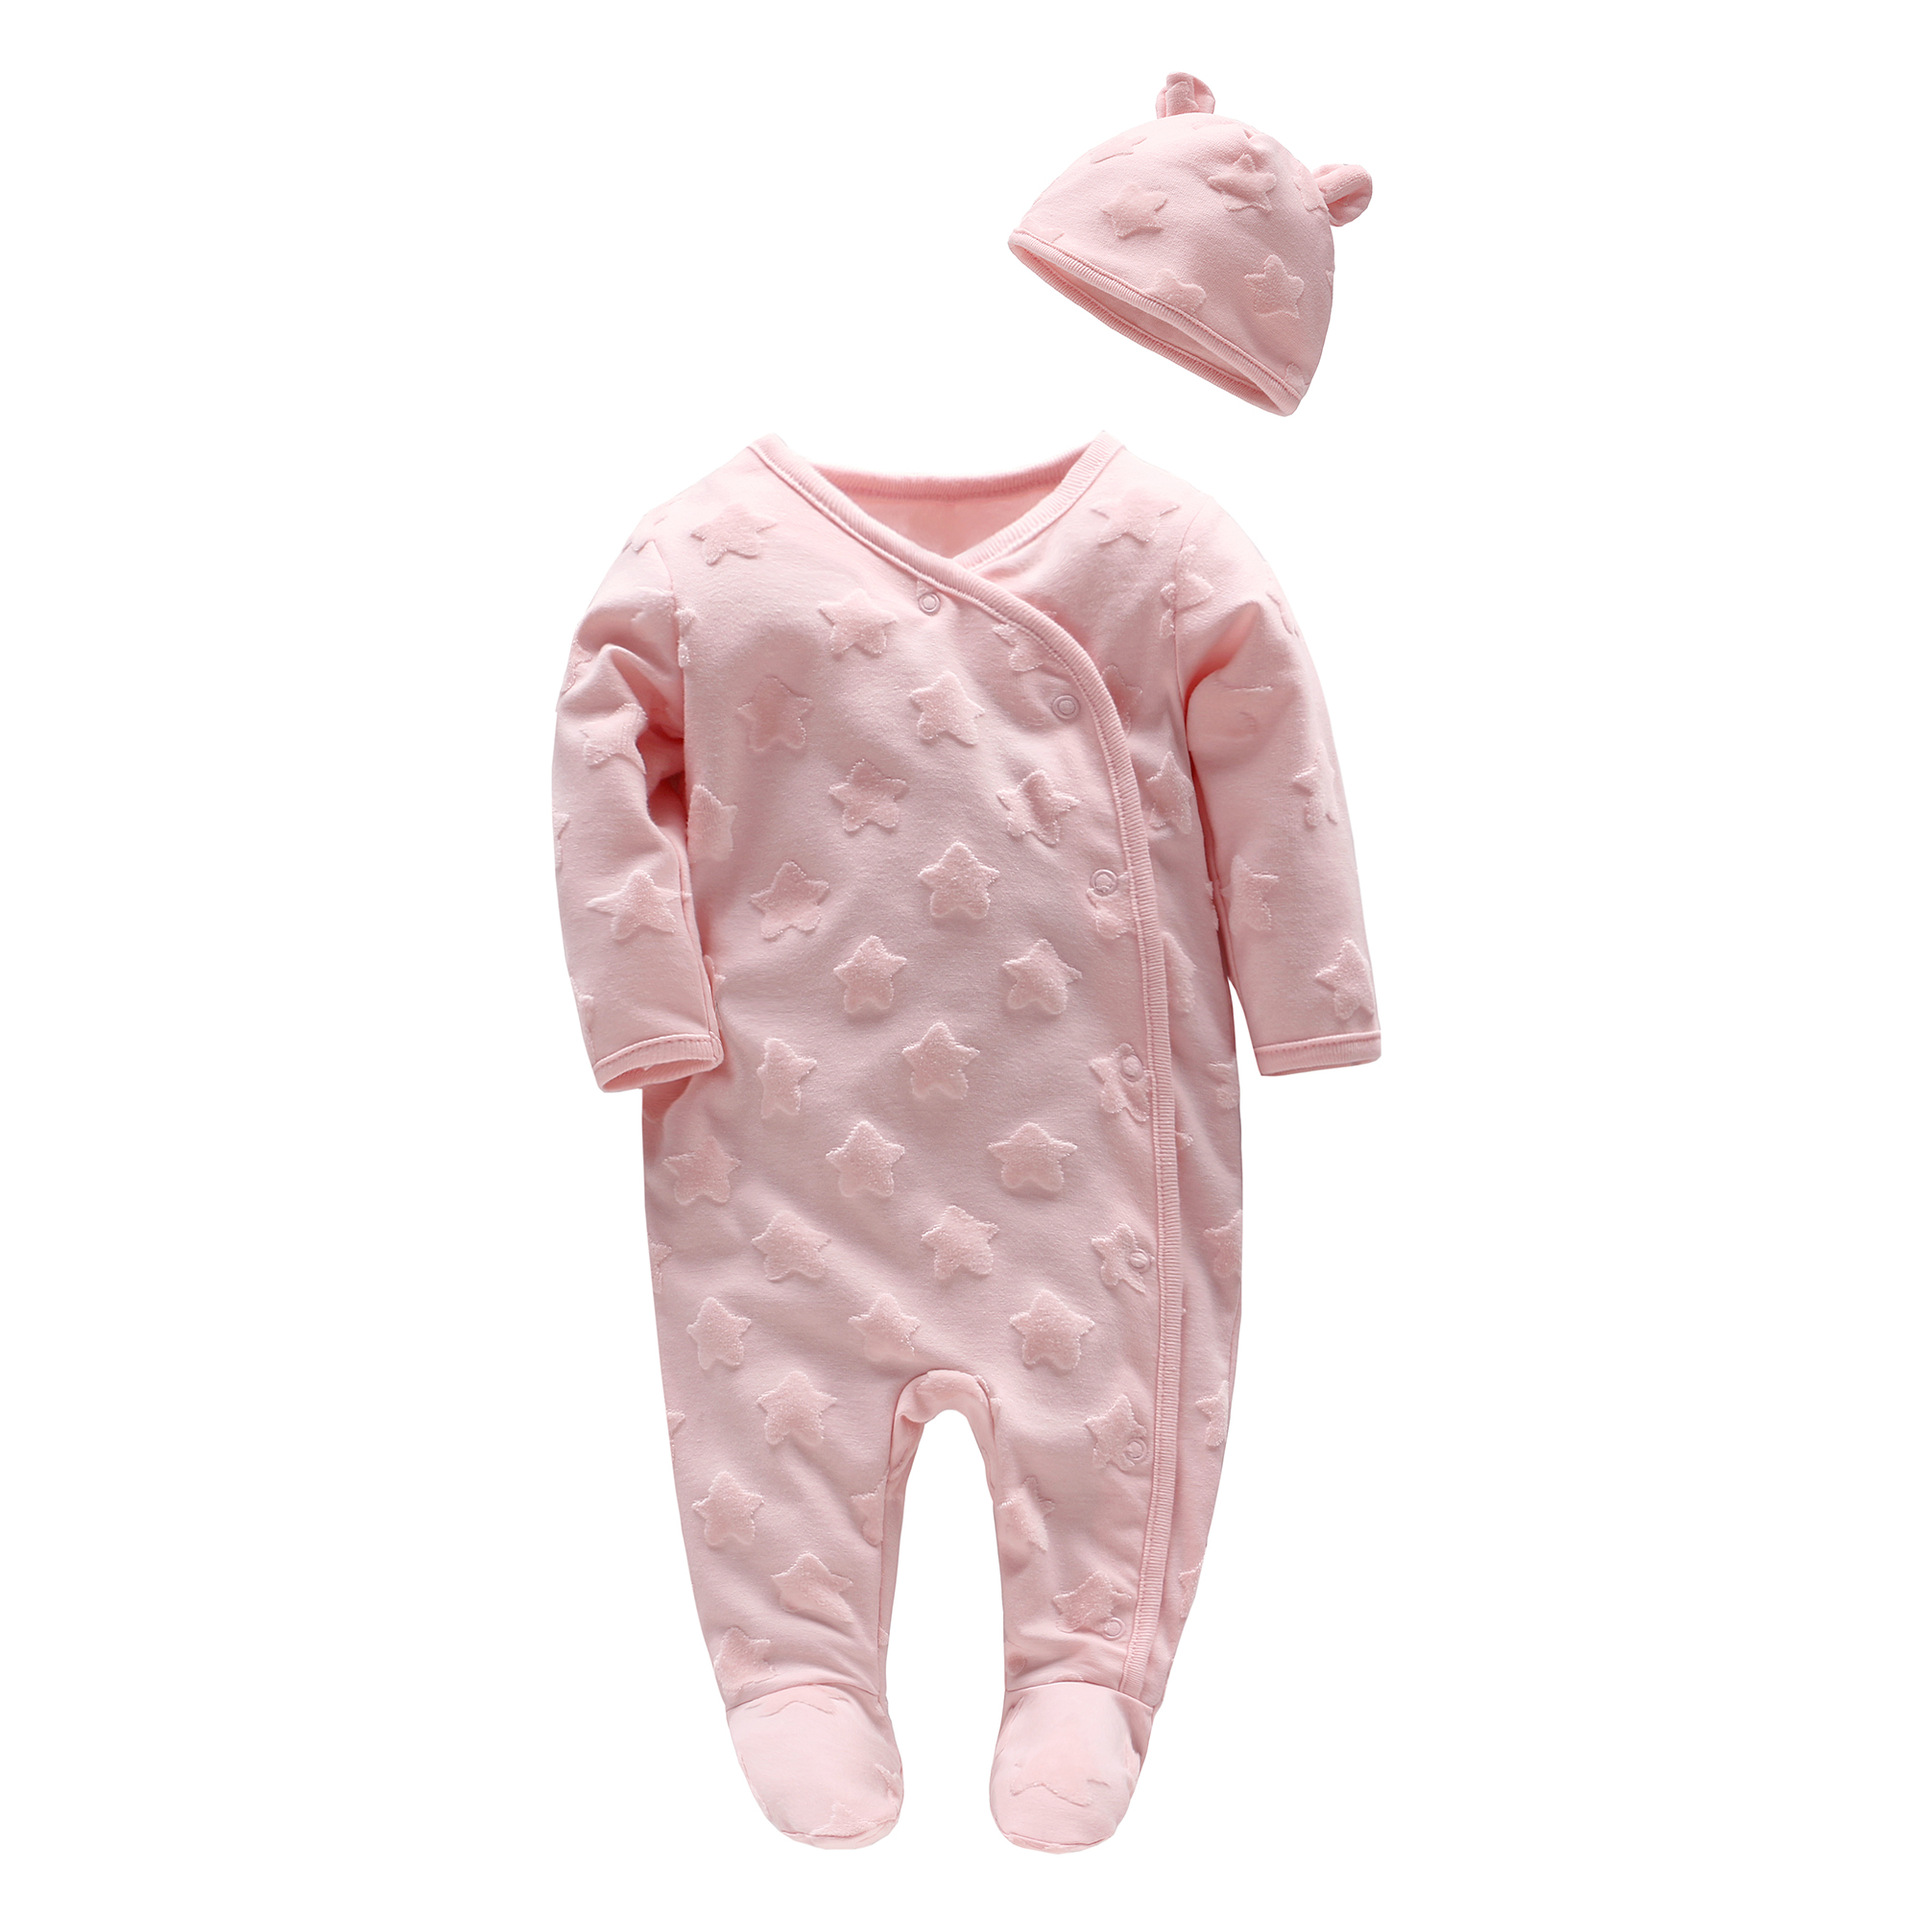 2018 Baby Girl Clothes Set Newborn Baby 2pcs Sets Star Soft Velvet Romper With Hat Babies Solid Pink Wedding Suits Newborn Gift 2pcs set newborn floral baby girl clothes 2017 summer sleeveless cotton ruffles romper baby bodysuit headband outfits sunsuit